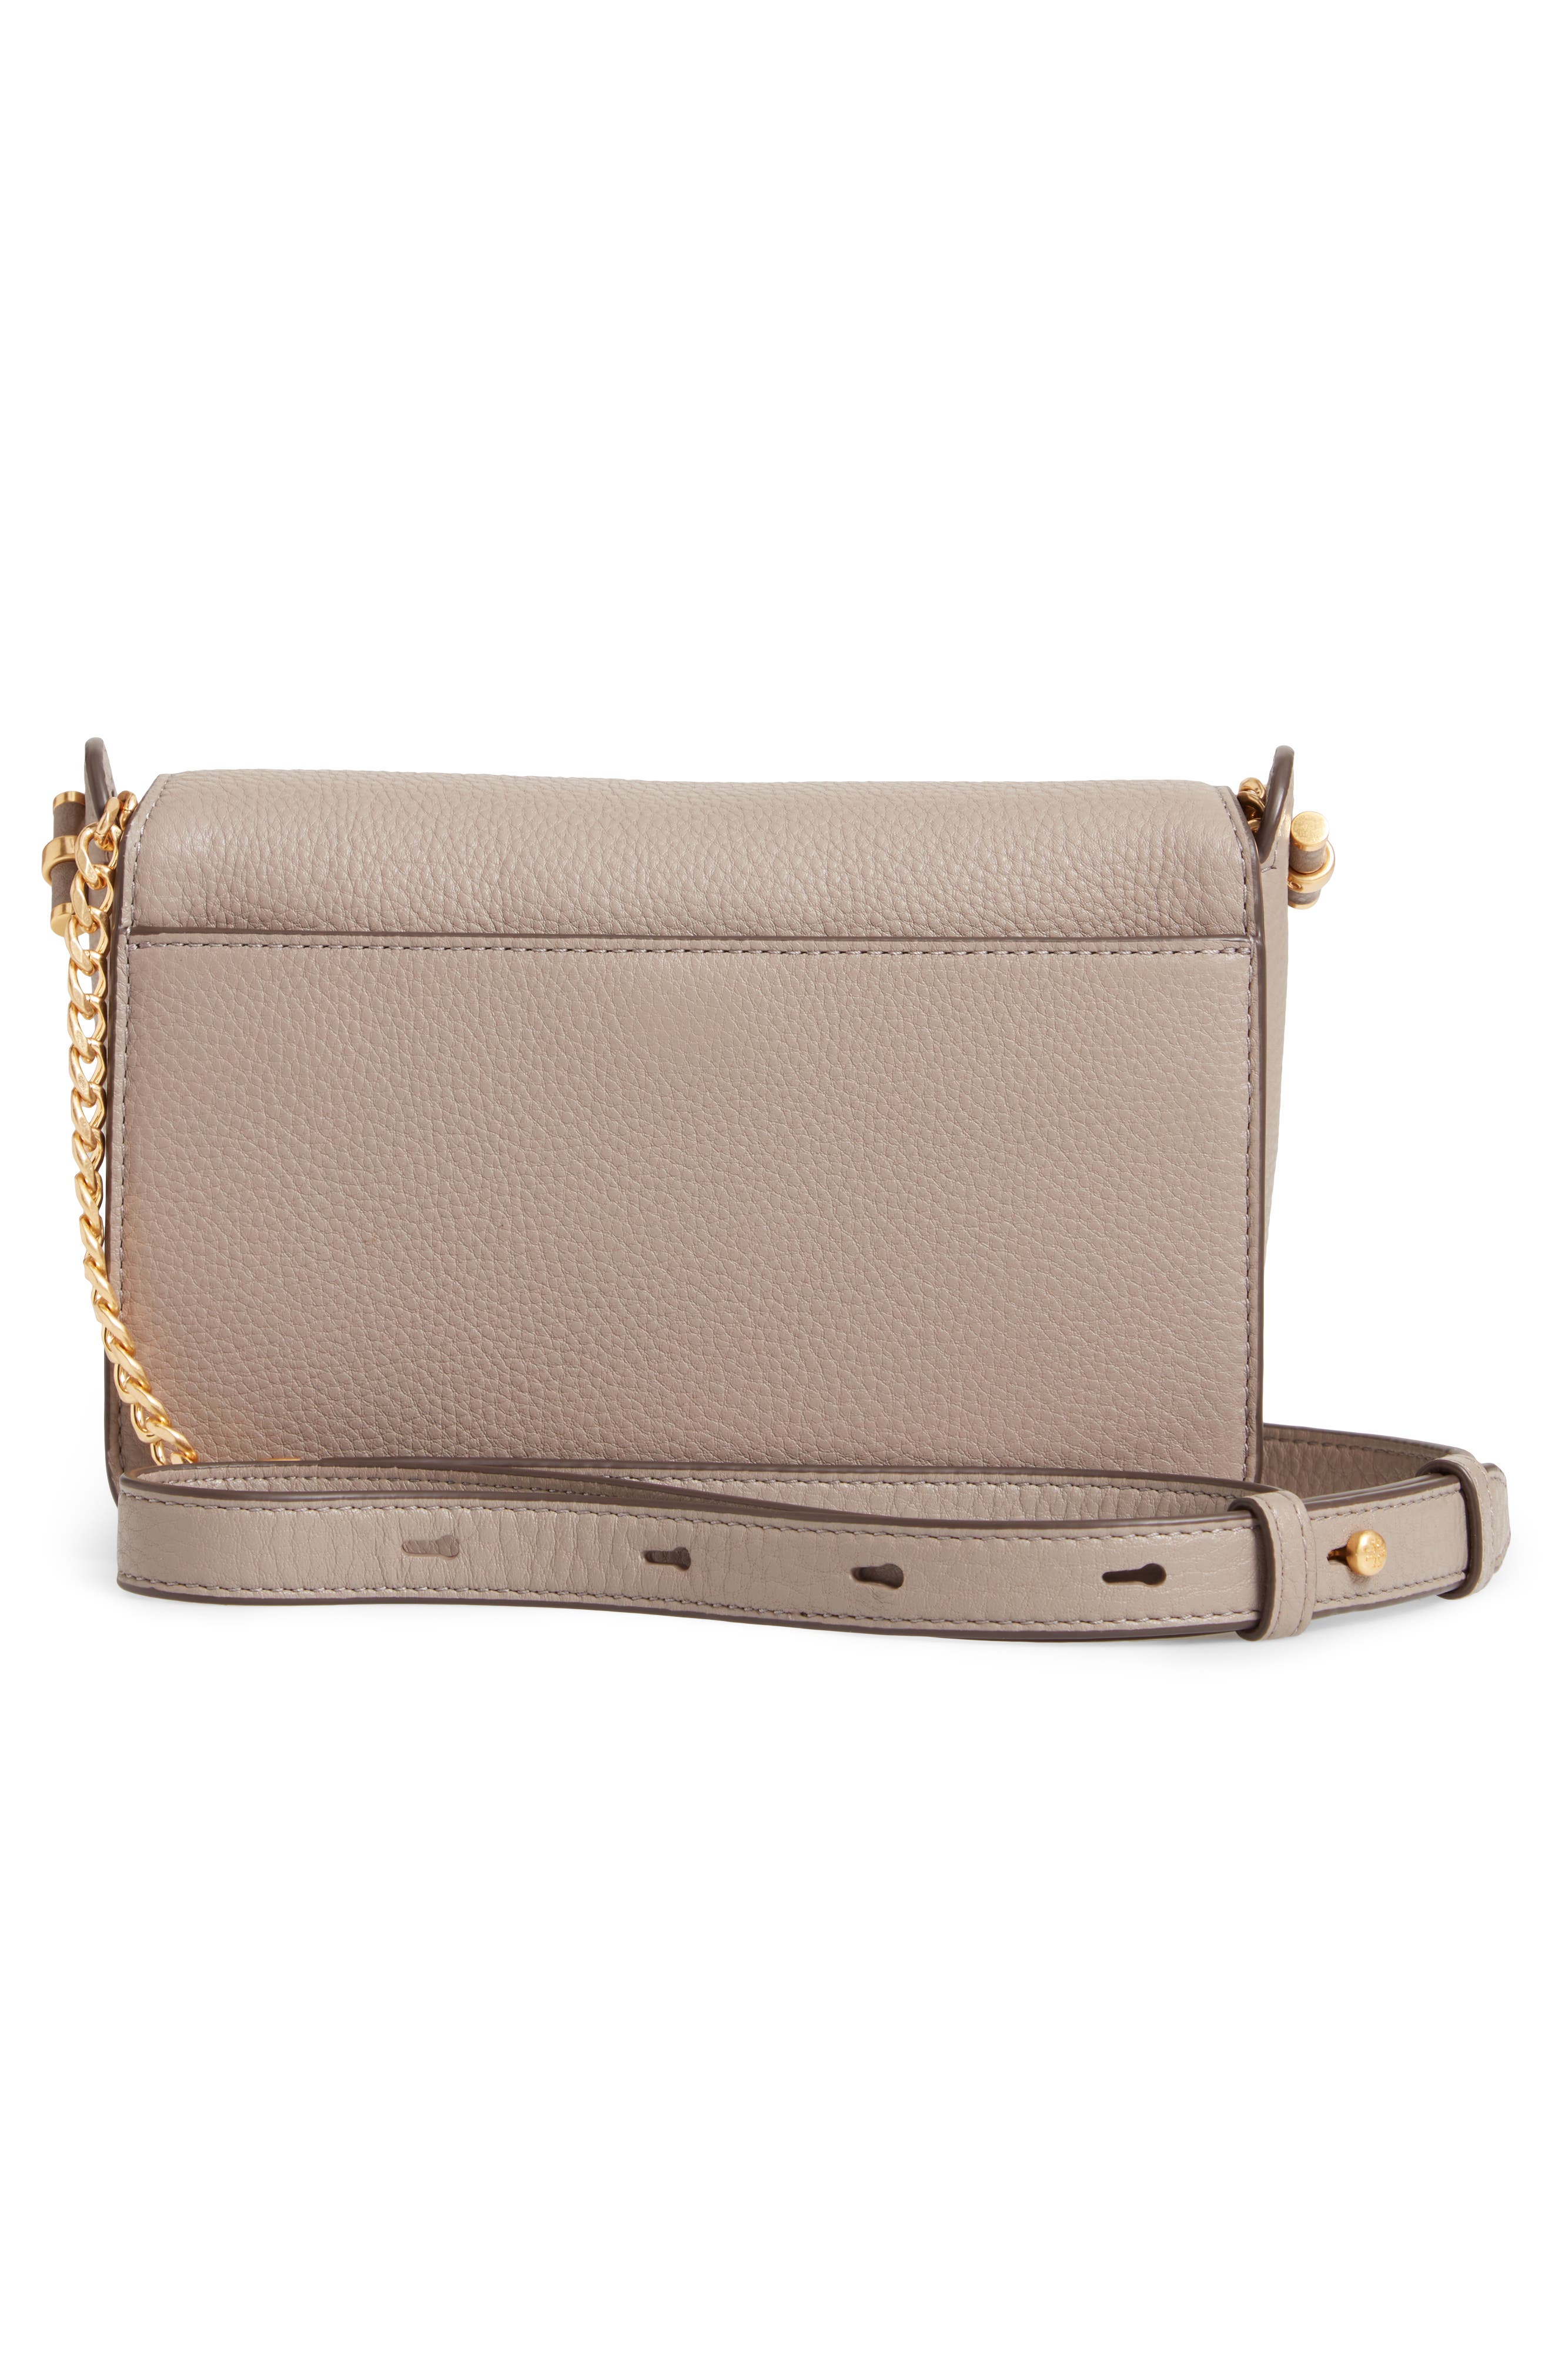 Chelsea Leather Crossbody Bag,                             Alternate thumbnail 3, color,                             GRAY HERON